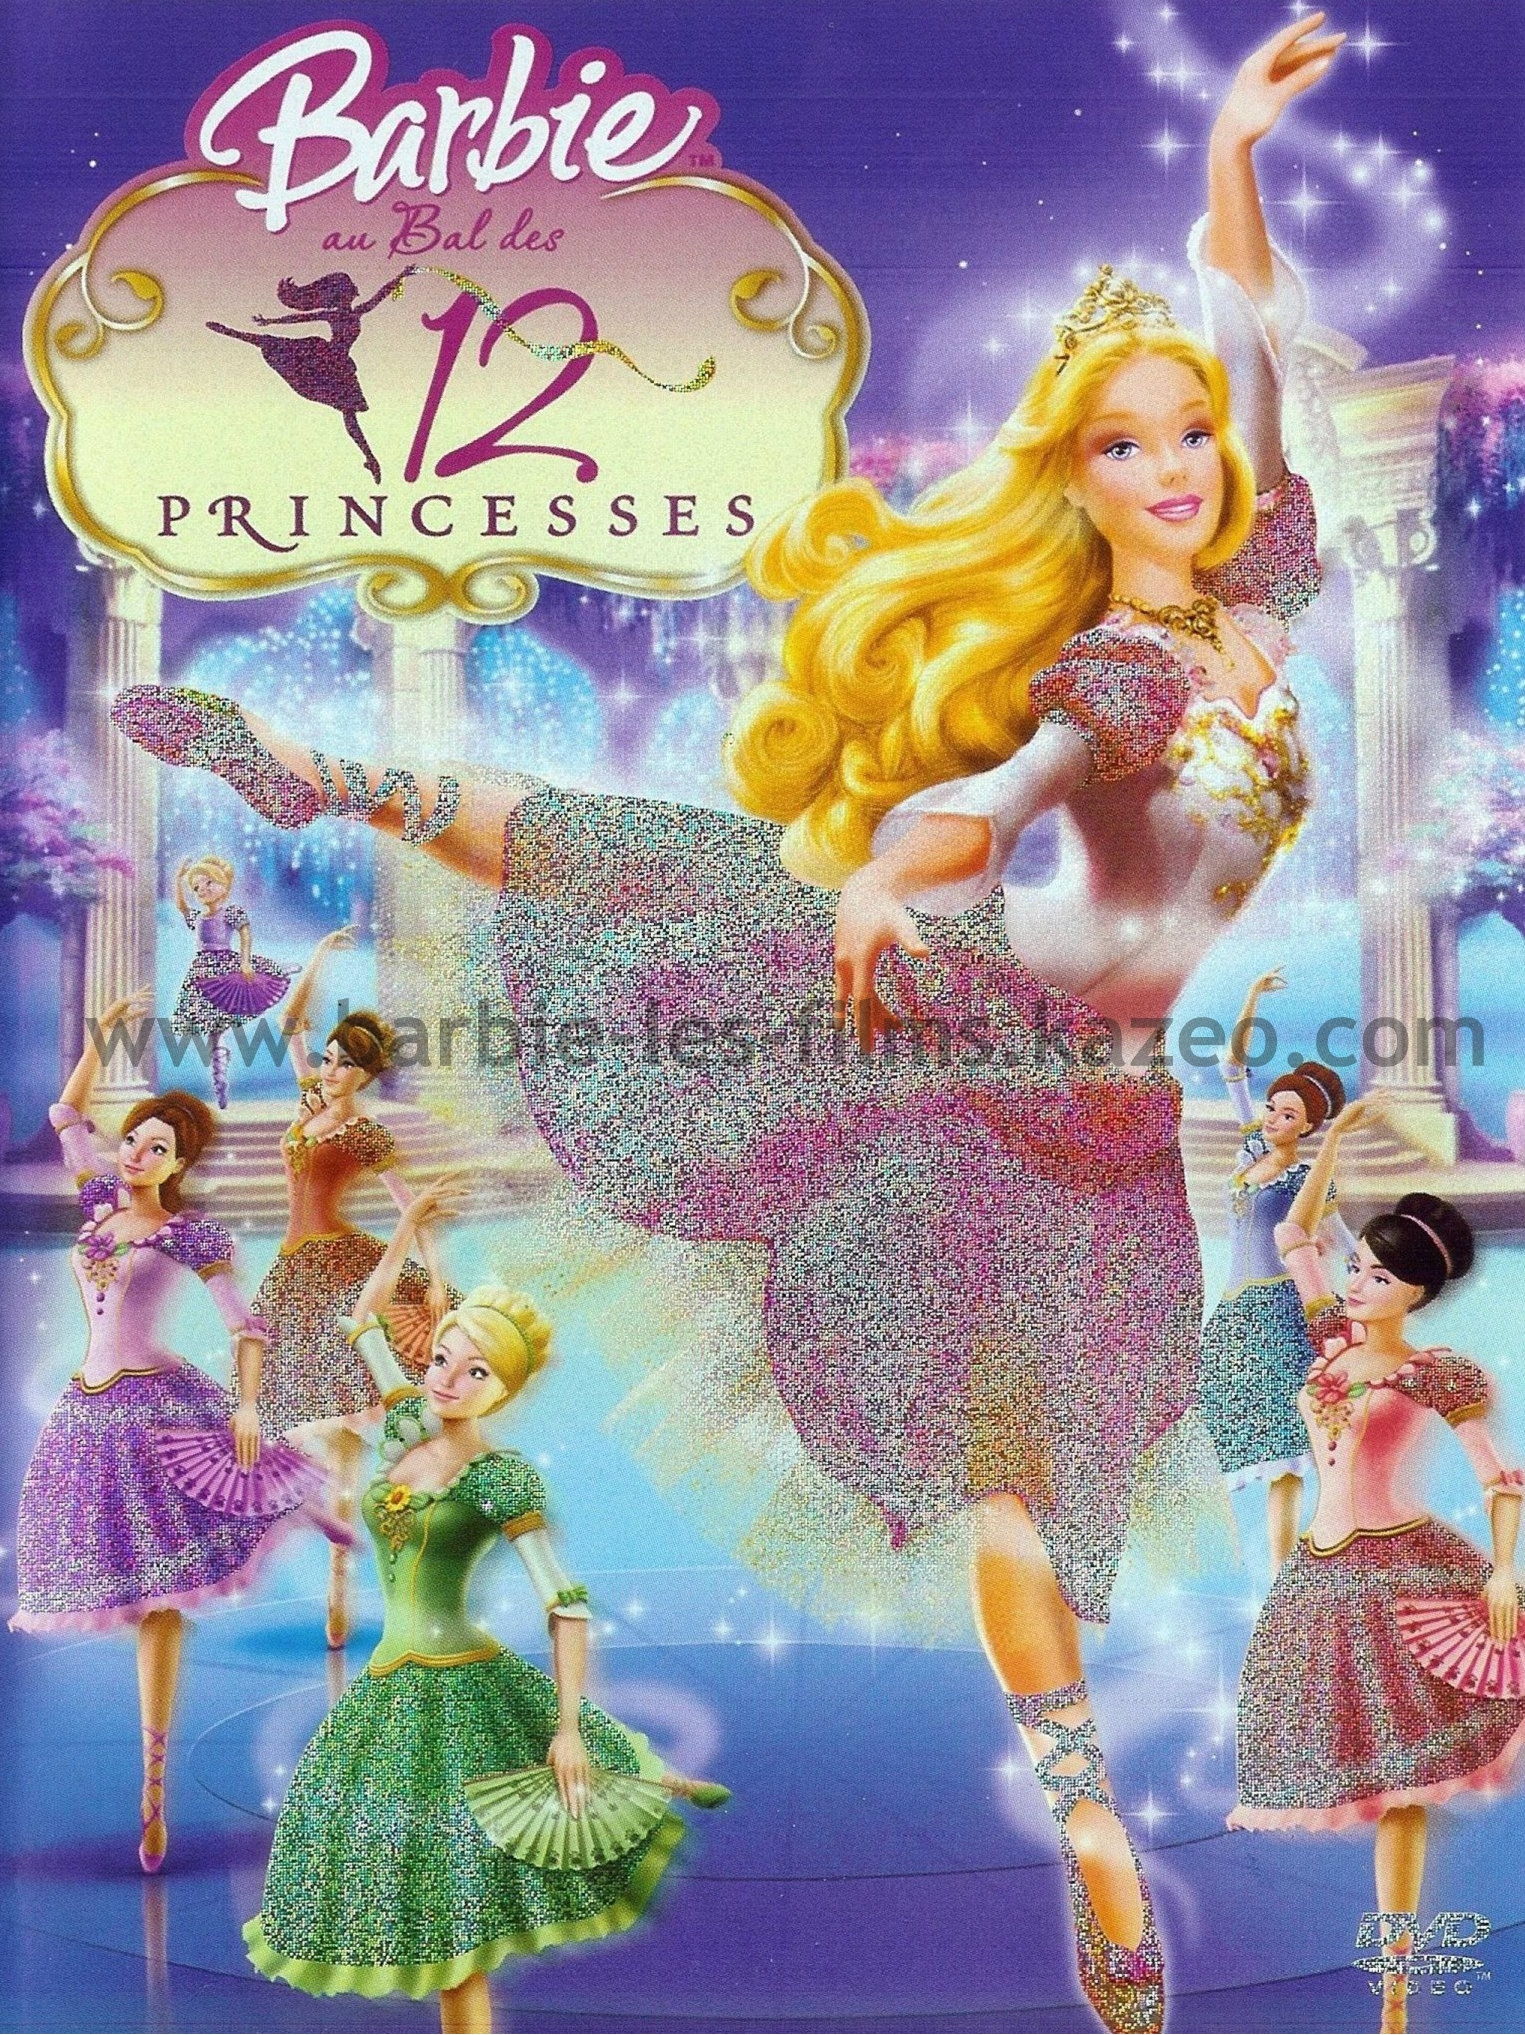 Barbie_au_bal_des_12_princesses